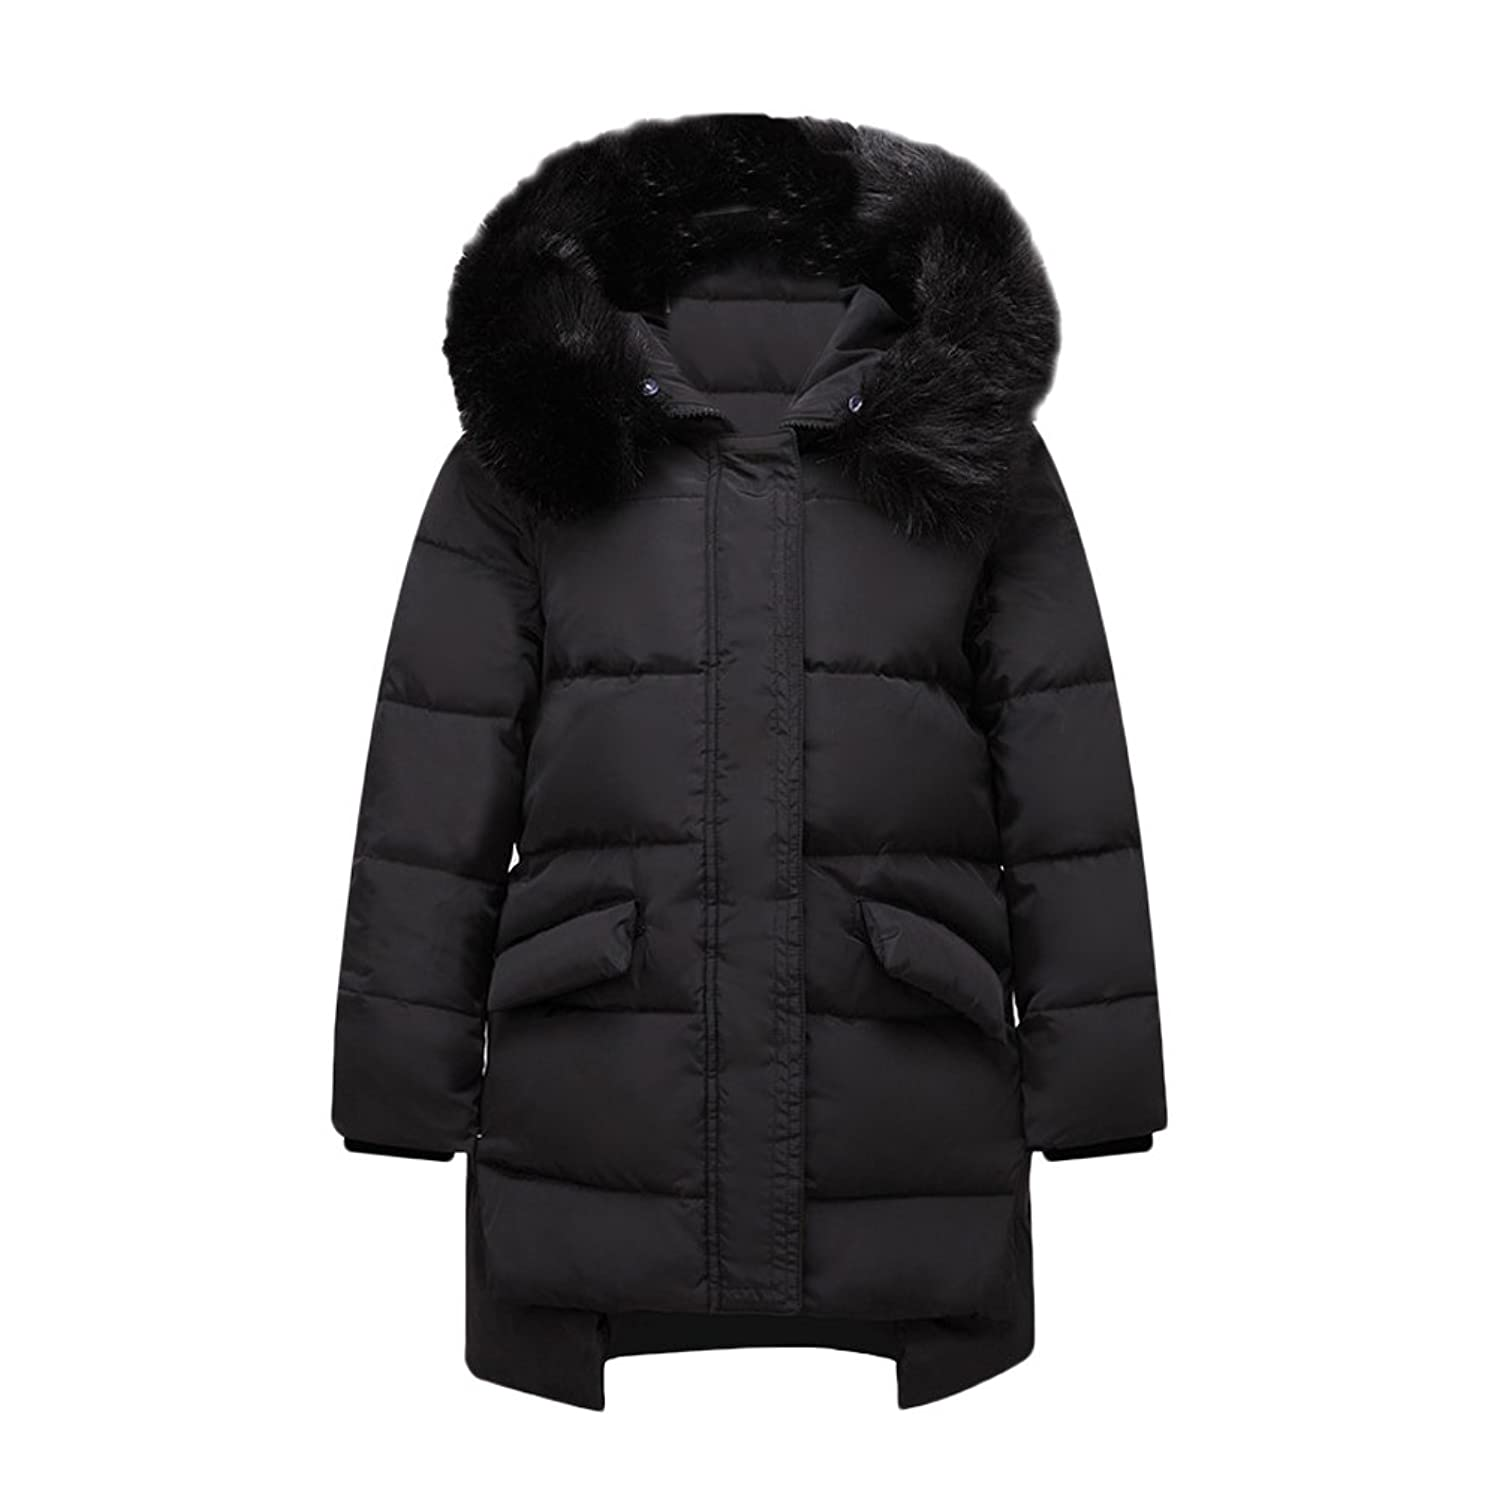 Zhuhaitf Winter Thicker Warm Cotton Casual Outwear Kids Girls Hooded Down Jacket